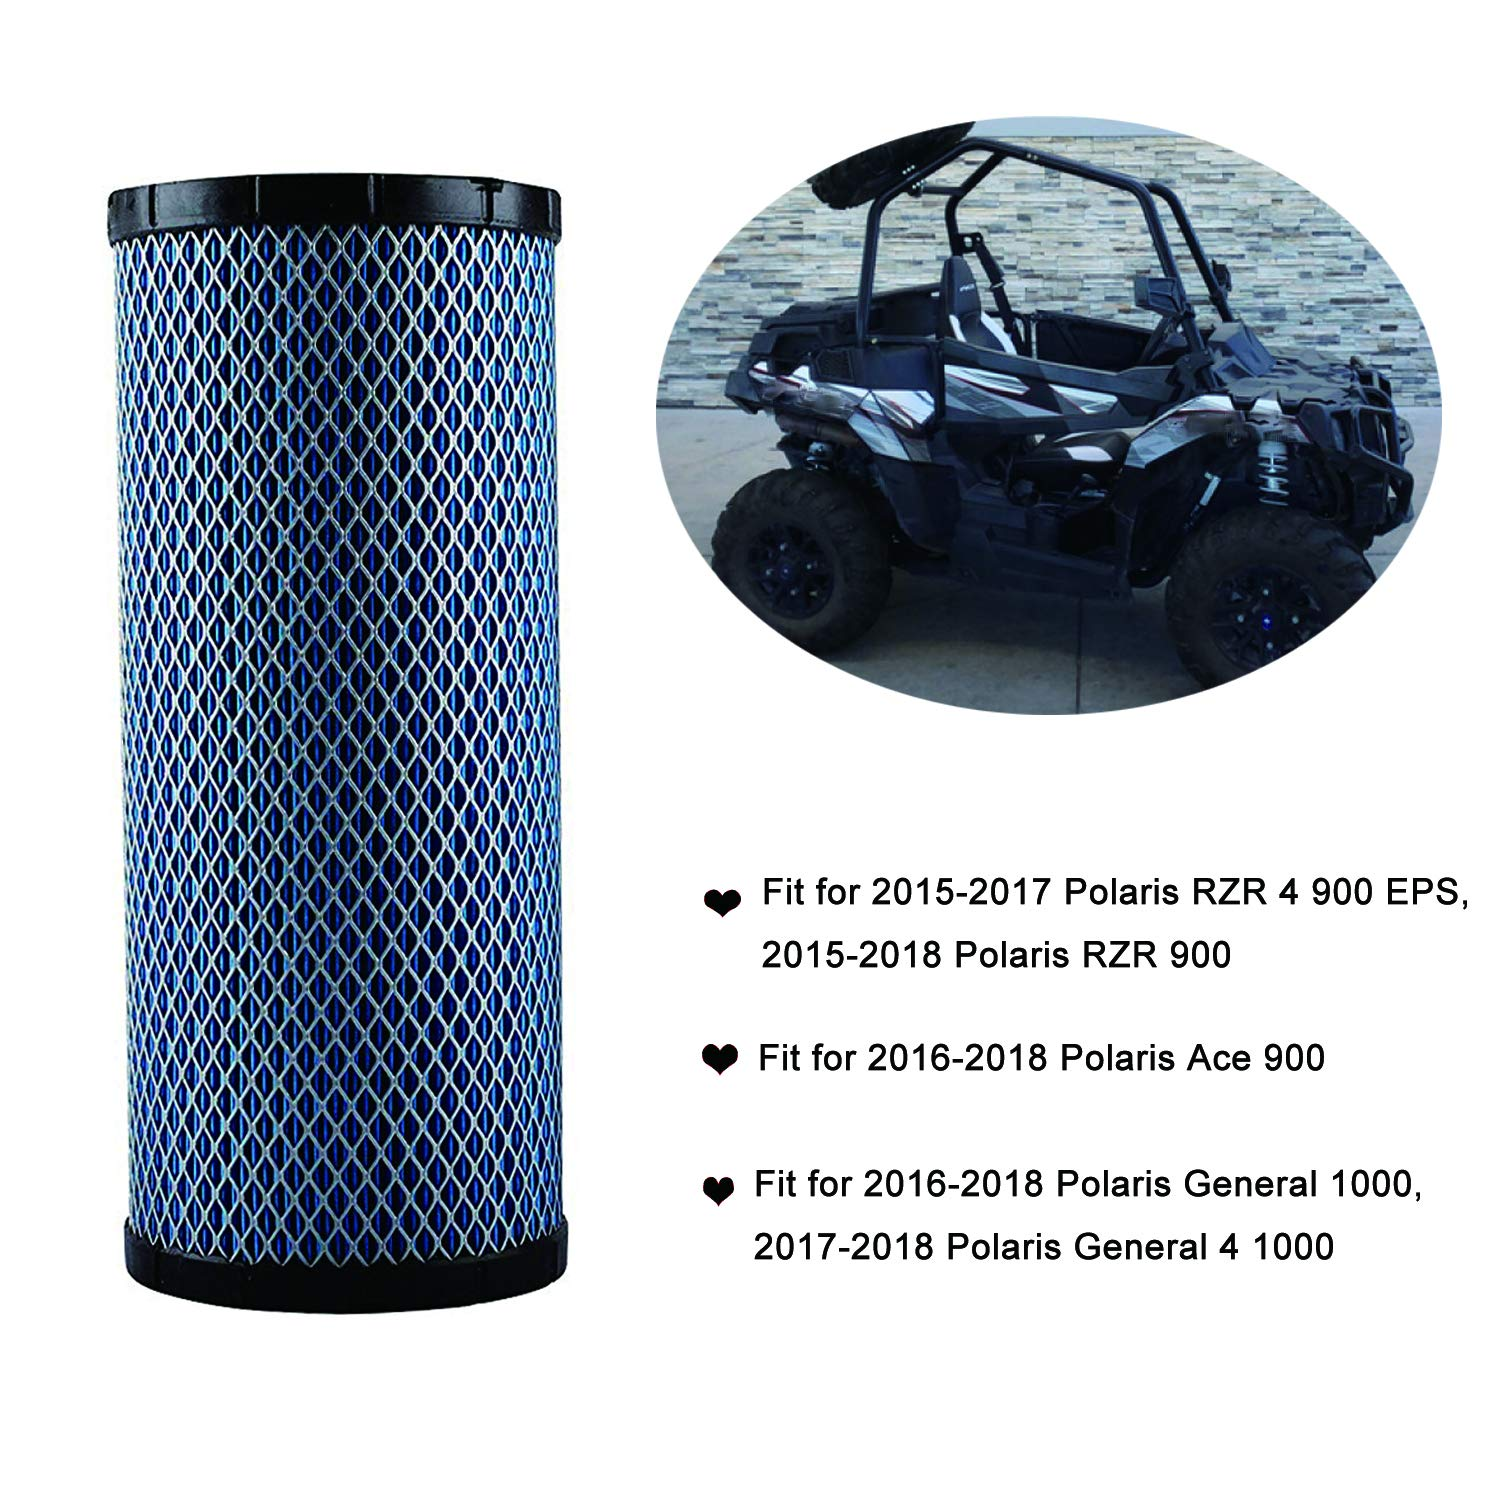 7082115 Air Filter Replacement Compatible with Polaris ACE 900, General 1000, General 4 1000, RZR 4 900, RZR 900, RZR S 1000 2015-2018 by Wddby (Image #5)